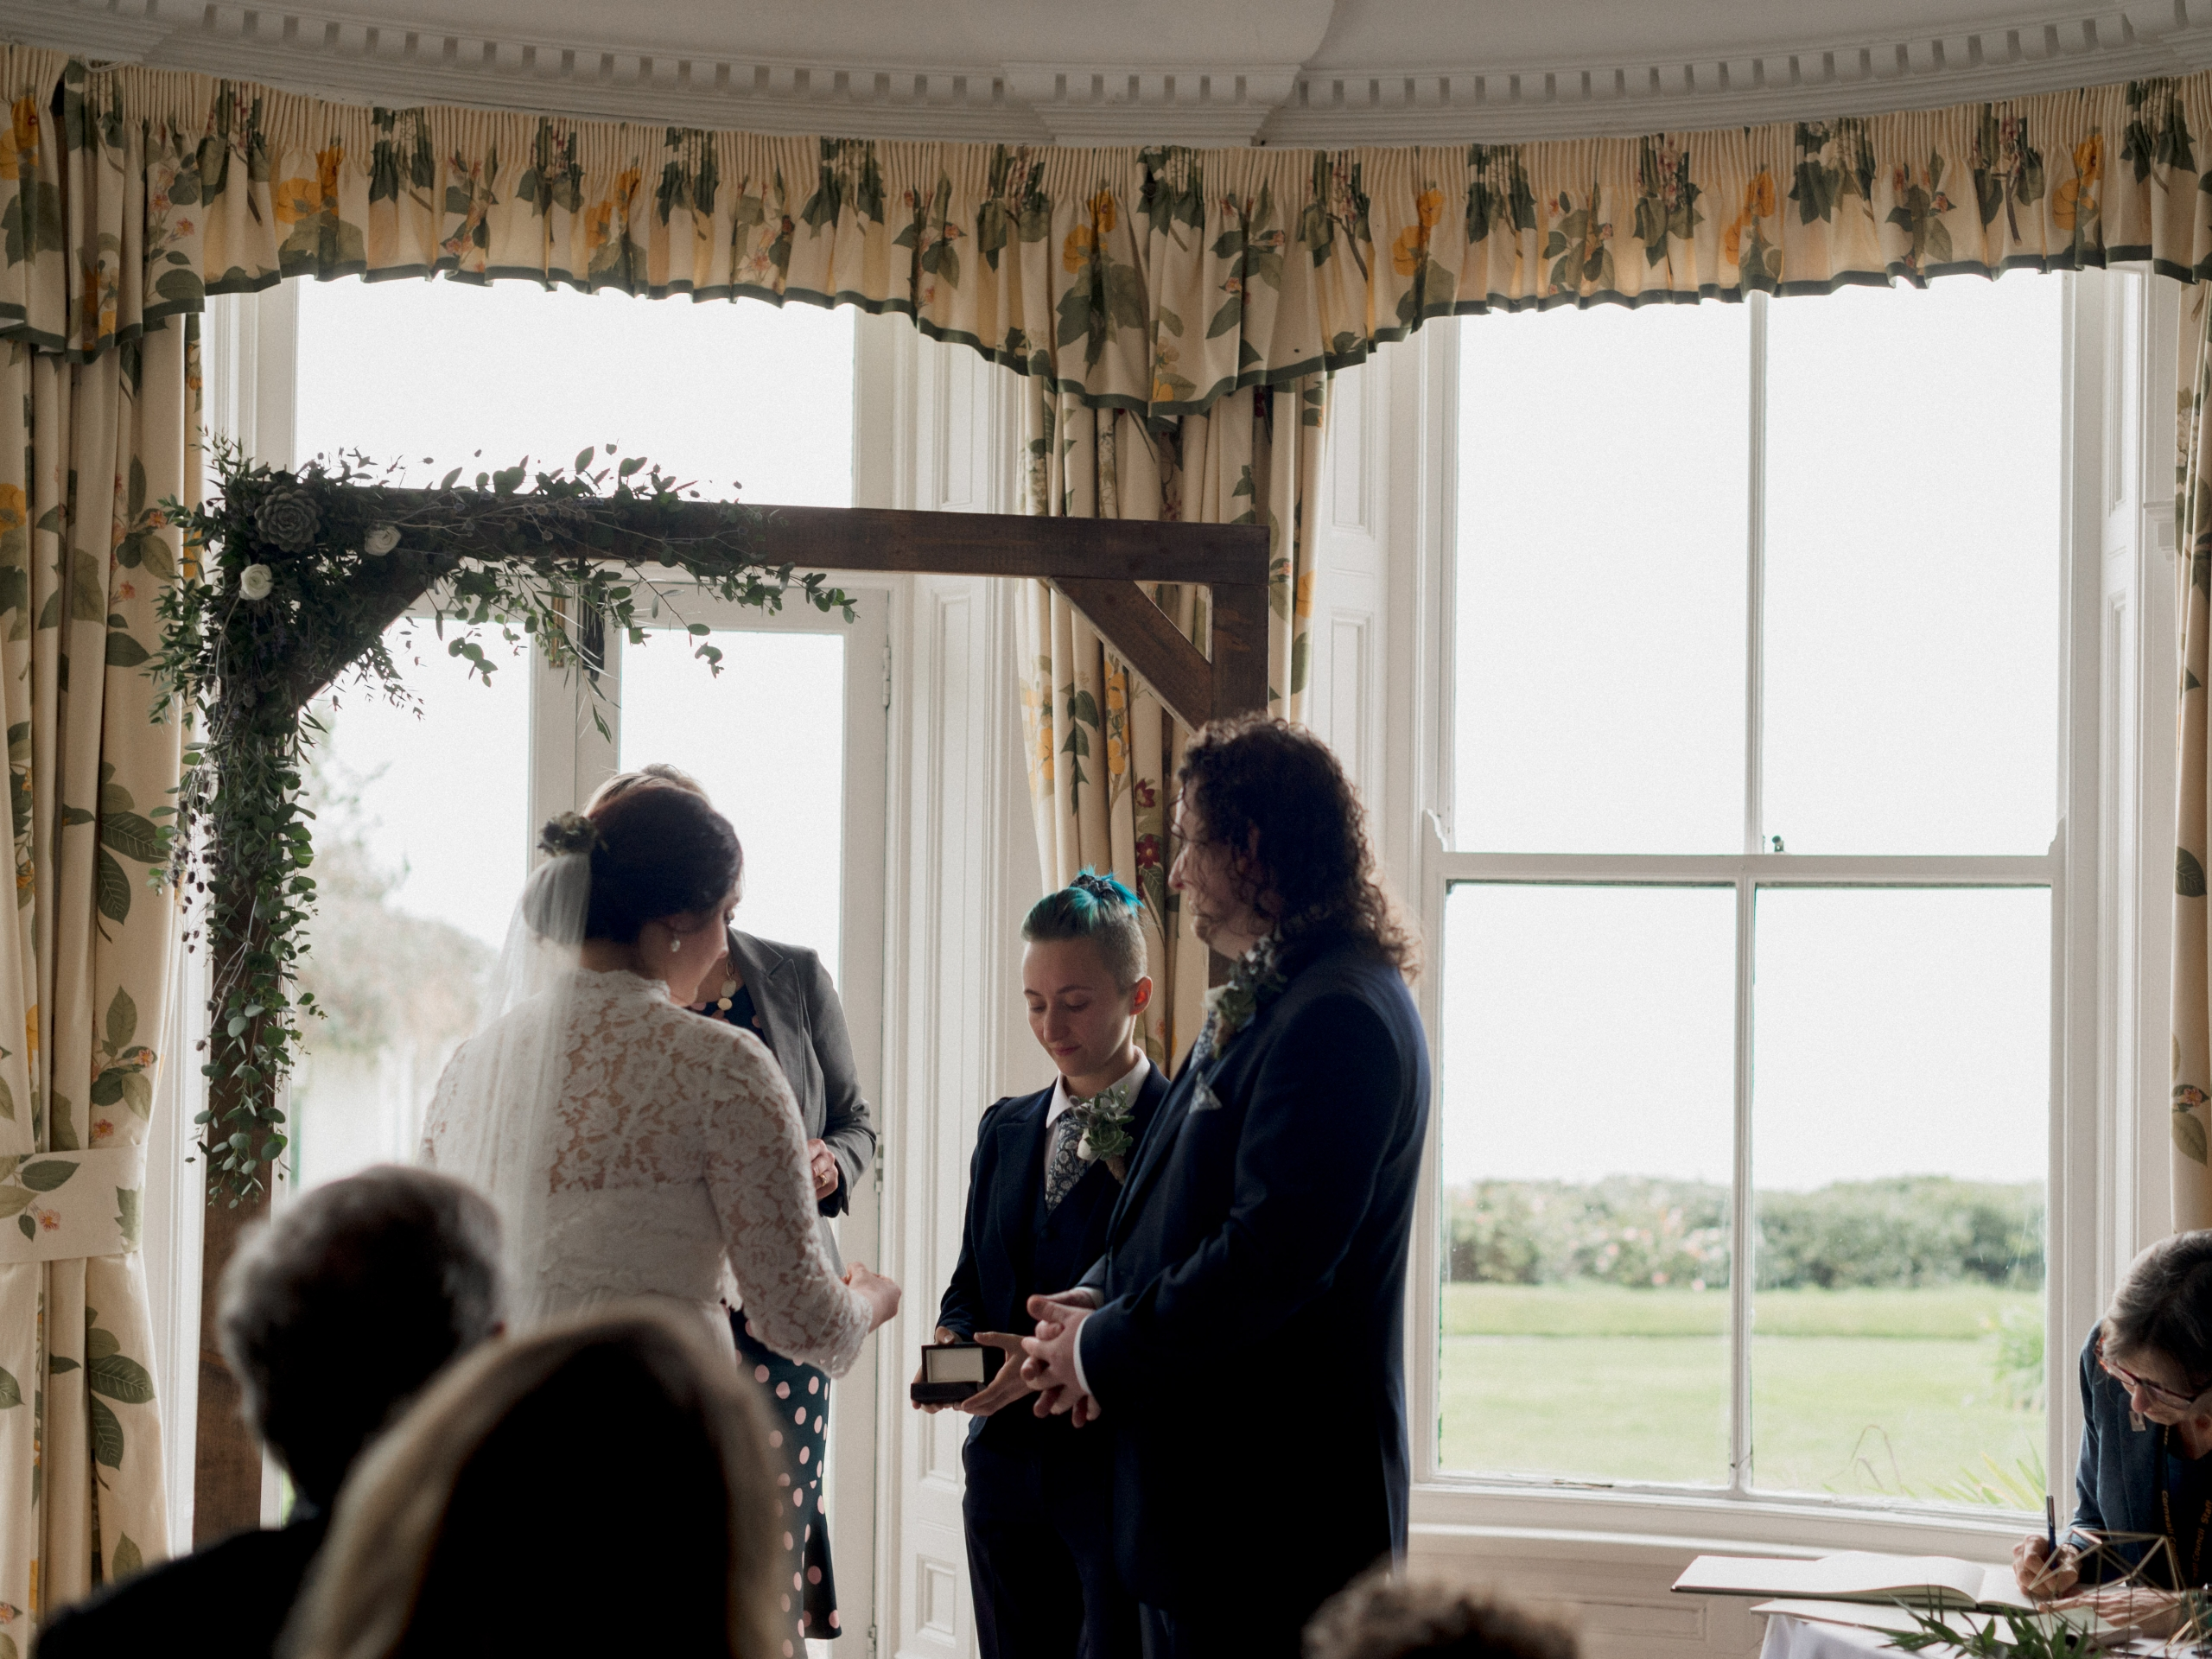 A bride and groom stand under a leafy wooding wedding arch, with the Best Man offering rings from a box, in front of a large window with a view of the sea